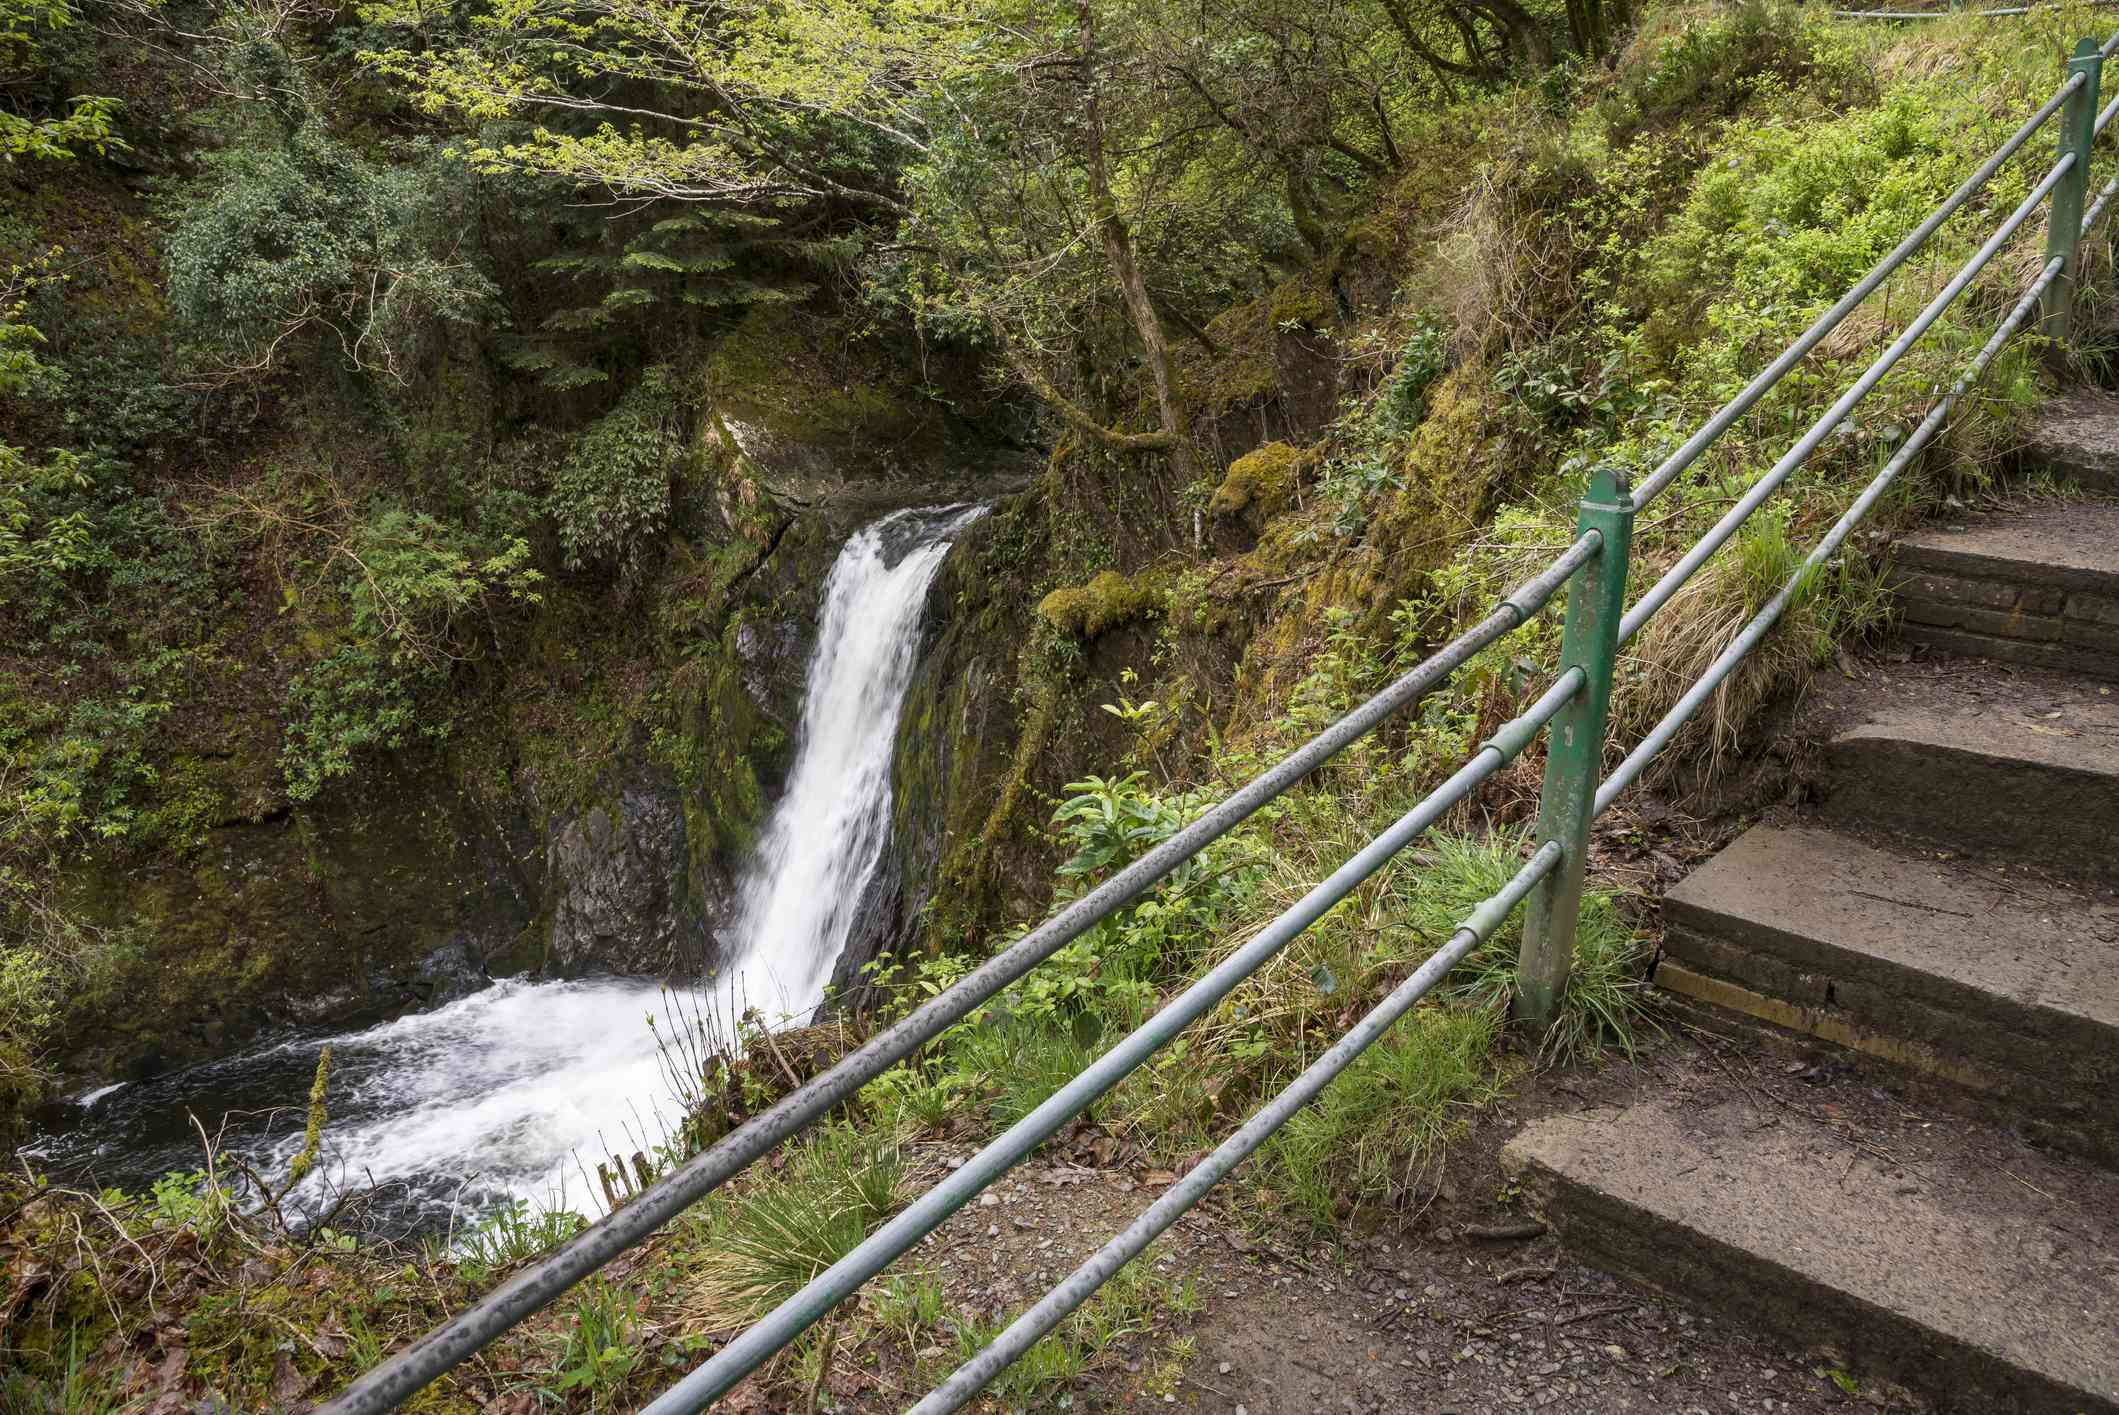 Stairs leading past a small waterfall